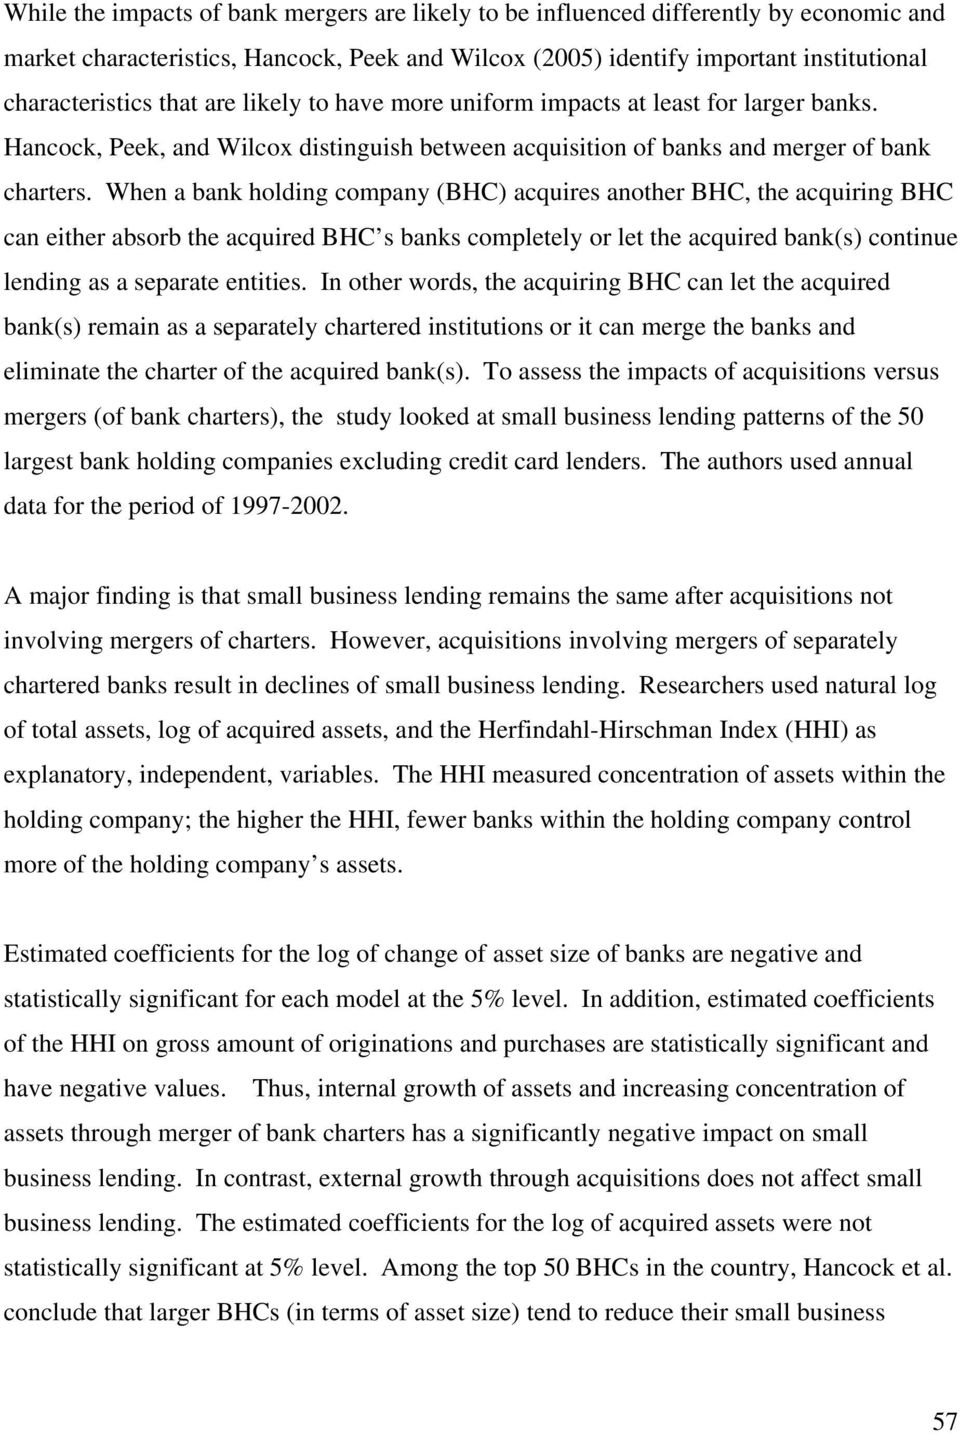 When a bank holding company (BHC) acquires another BHC, the acquiring BHC can either absorb the acquired BHC s banks completely or let the acquired bank(s) continue lending as a separate entities.